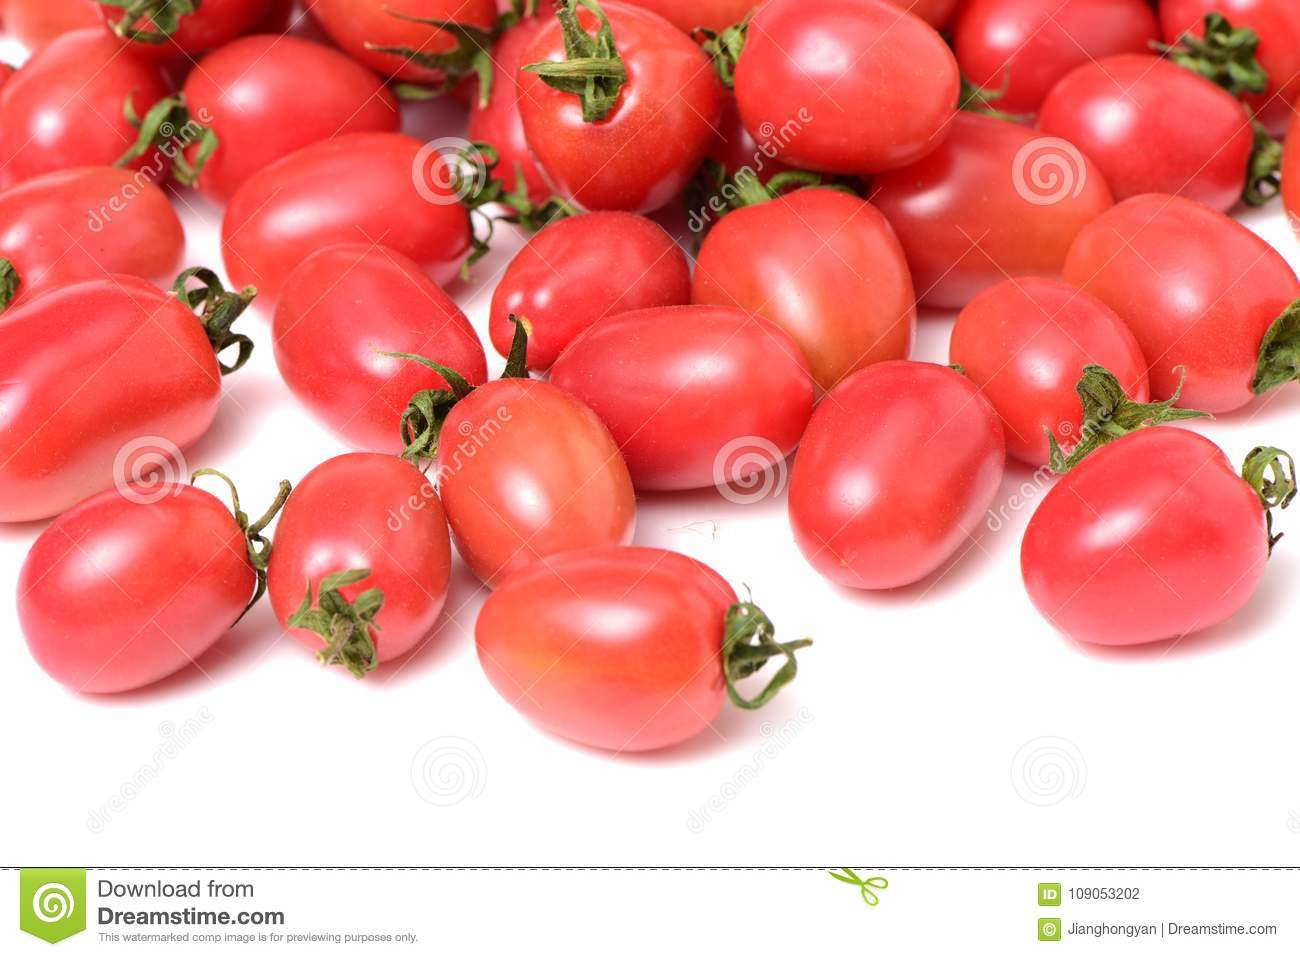 Cherry tomatoes close-up. Studio photography on a white background. Six varieties of tomatoes cherry